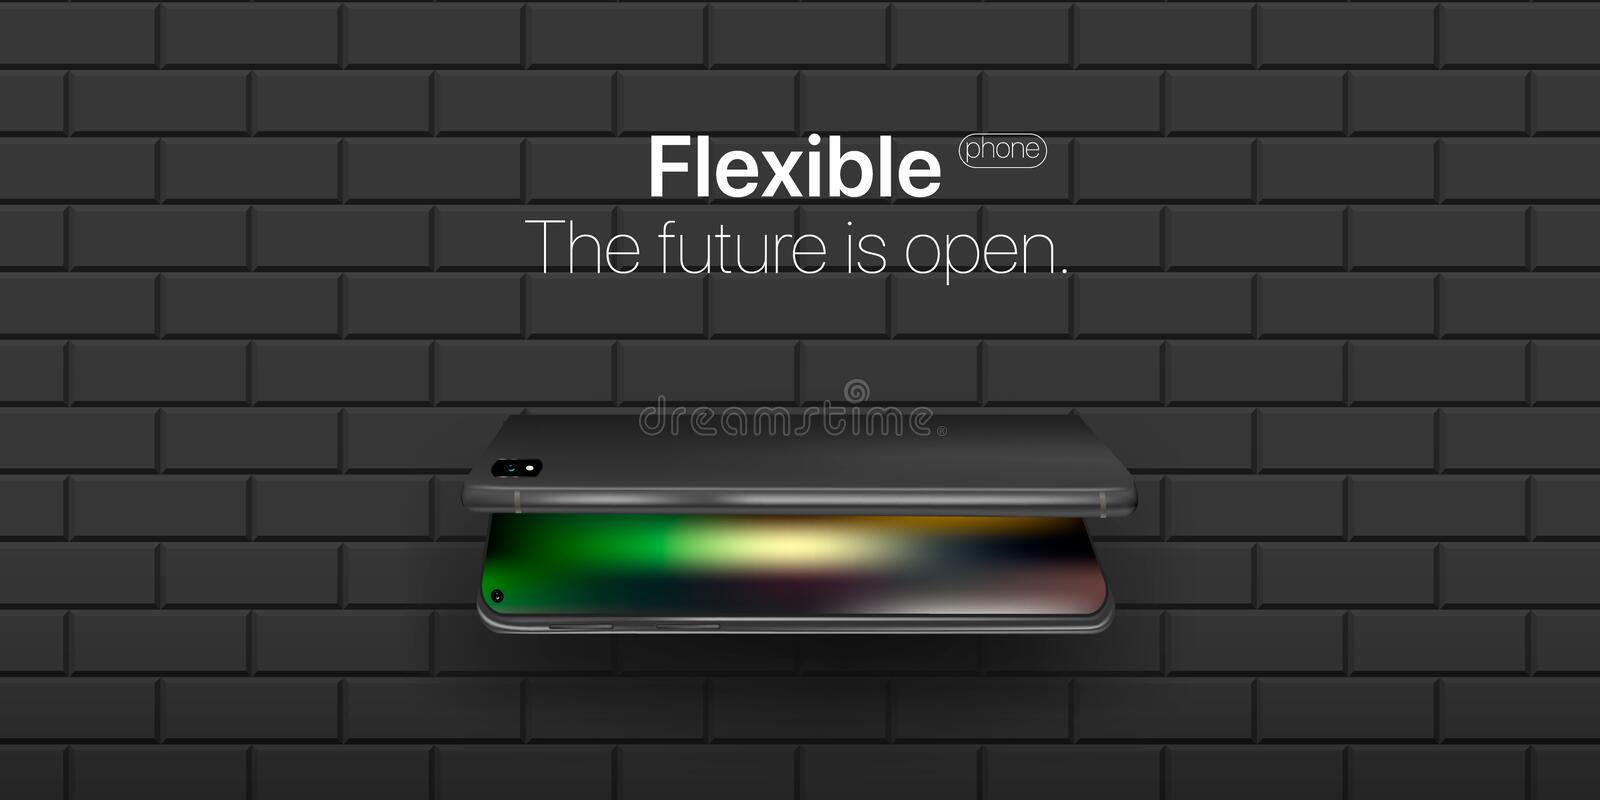 Flexible phone. Concept new technology in phone industries. Flexible display of mobile phone bended hanging over wall. stock photo